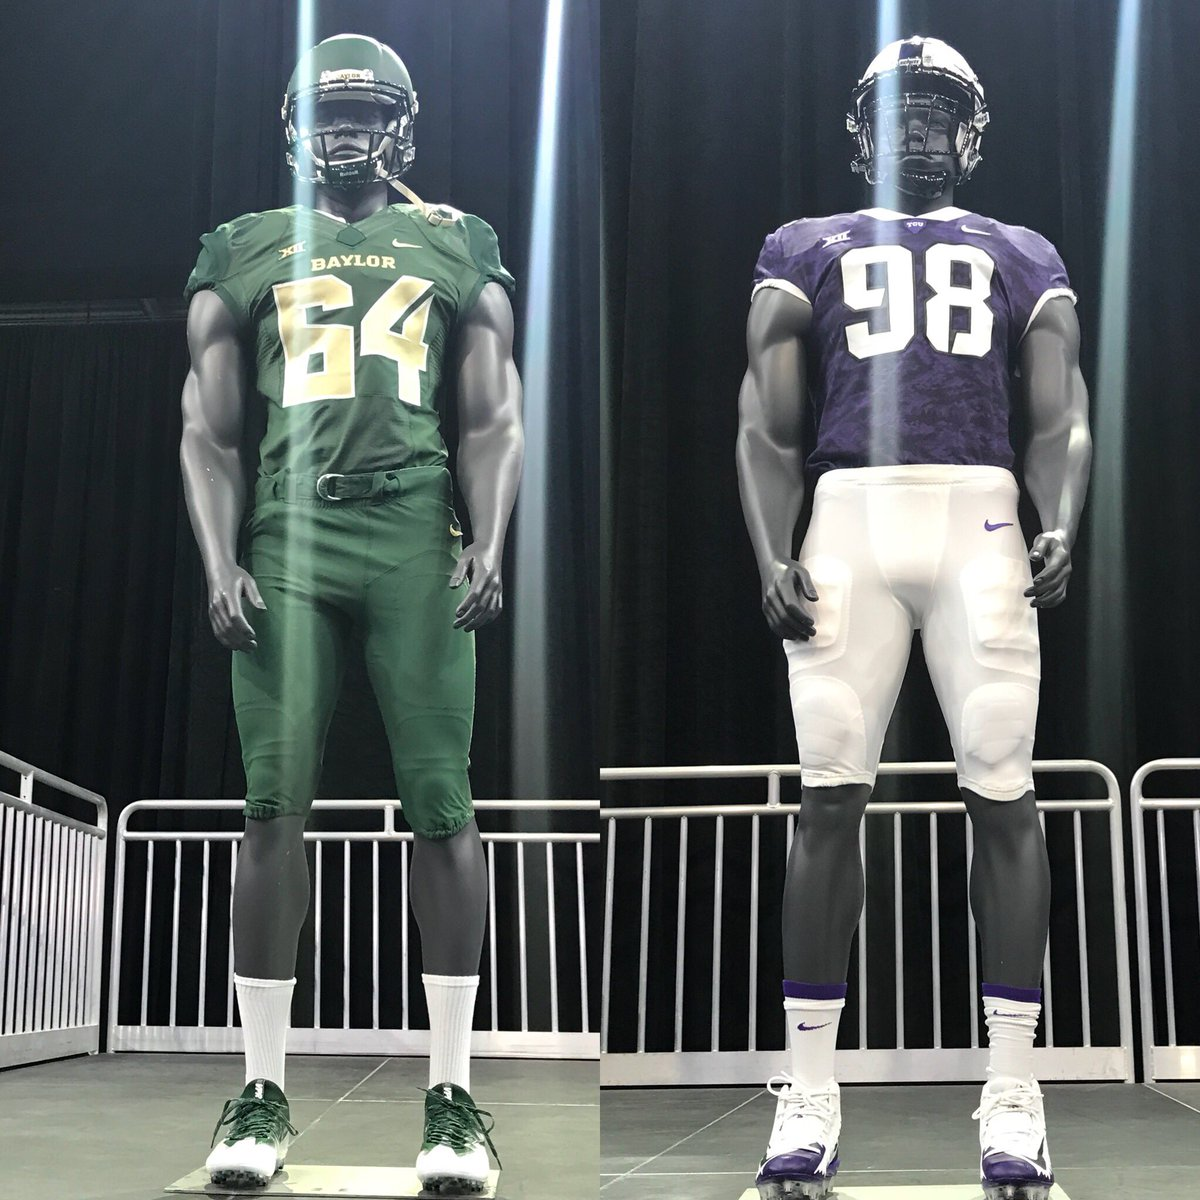 Rival uniform challenge! RT for @BUFootball ♥️ for @TCUFootball